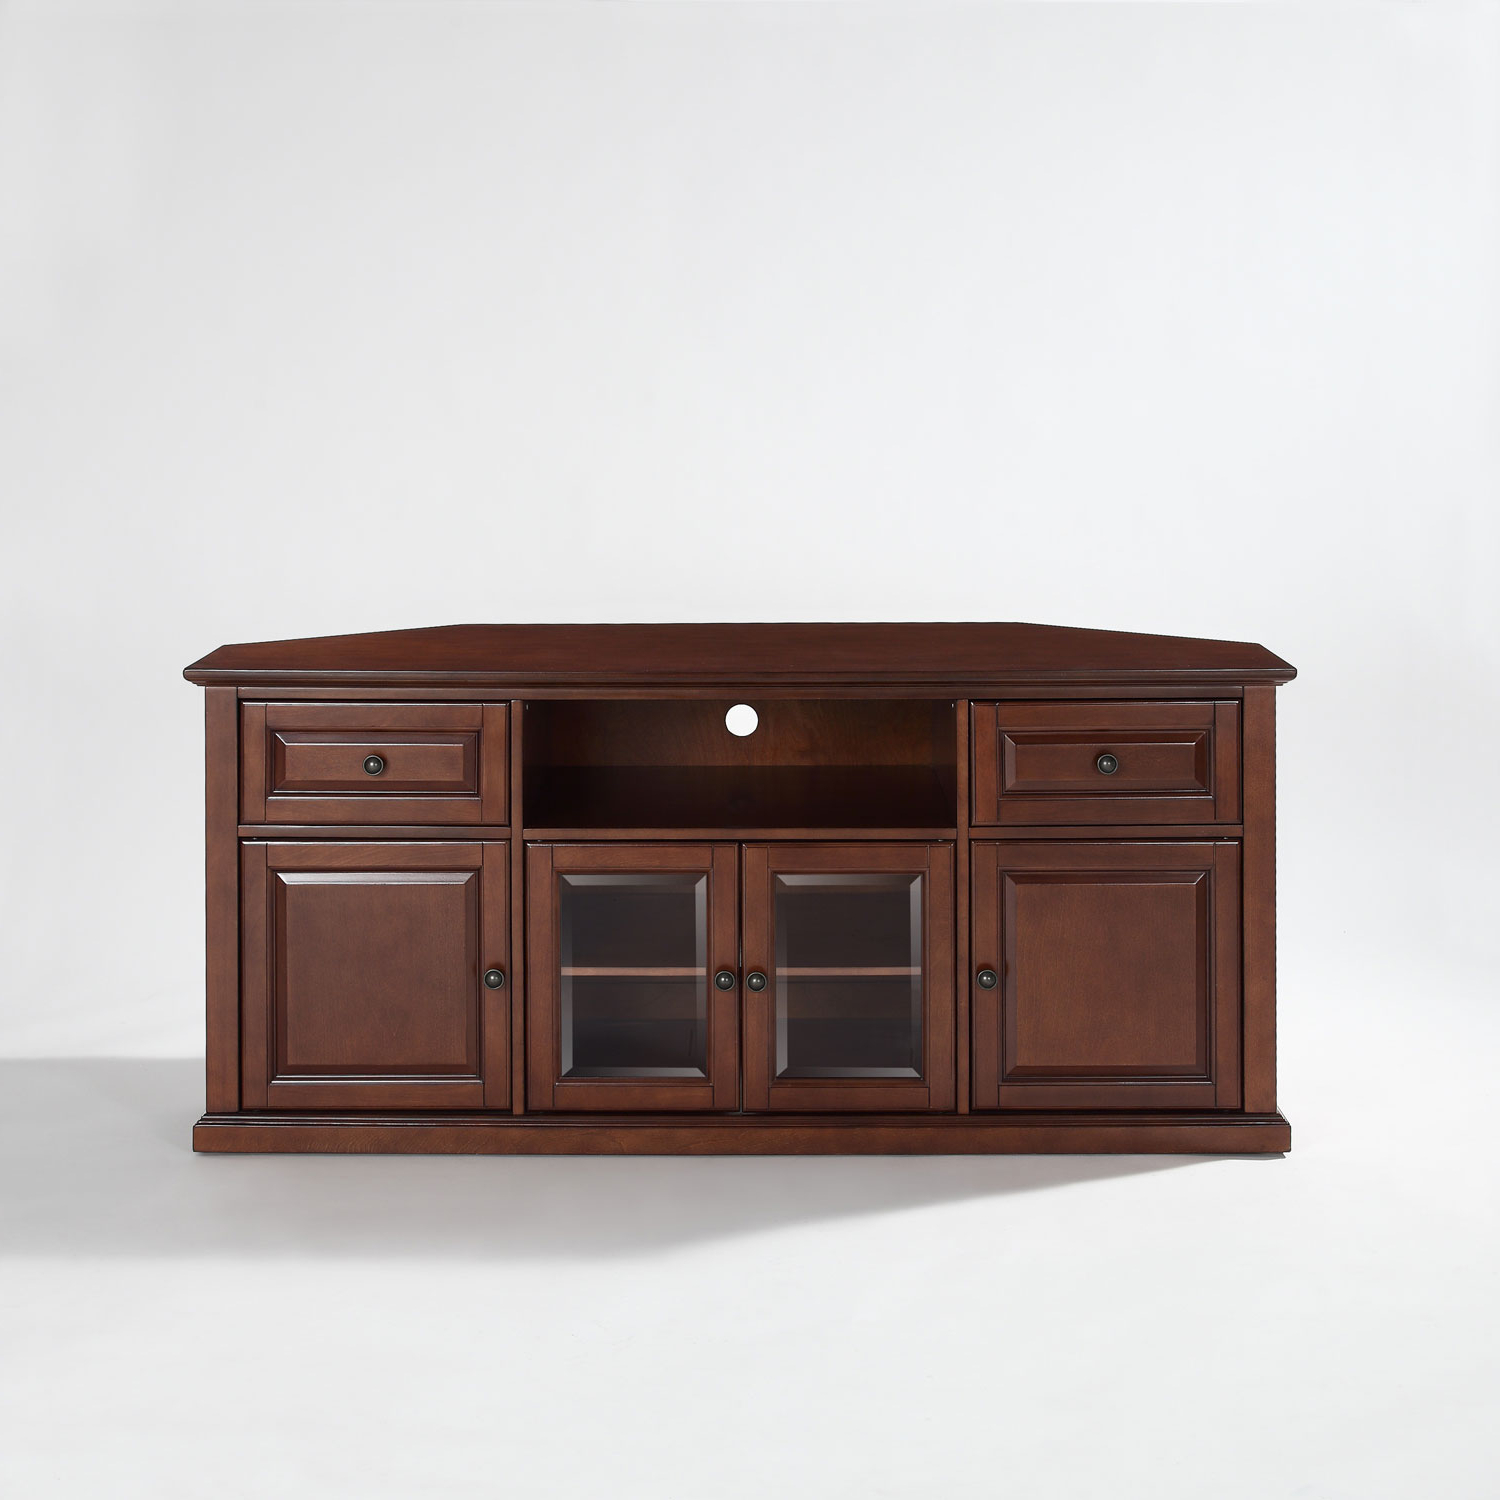 Popular Crosley Furniture 60 Inch Corner Tv Stand In Vintage Mahogany Pertaining To Corner Wooden Tv Stands (View 12 of 20)